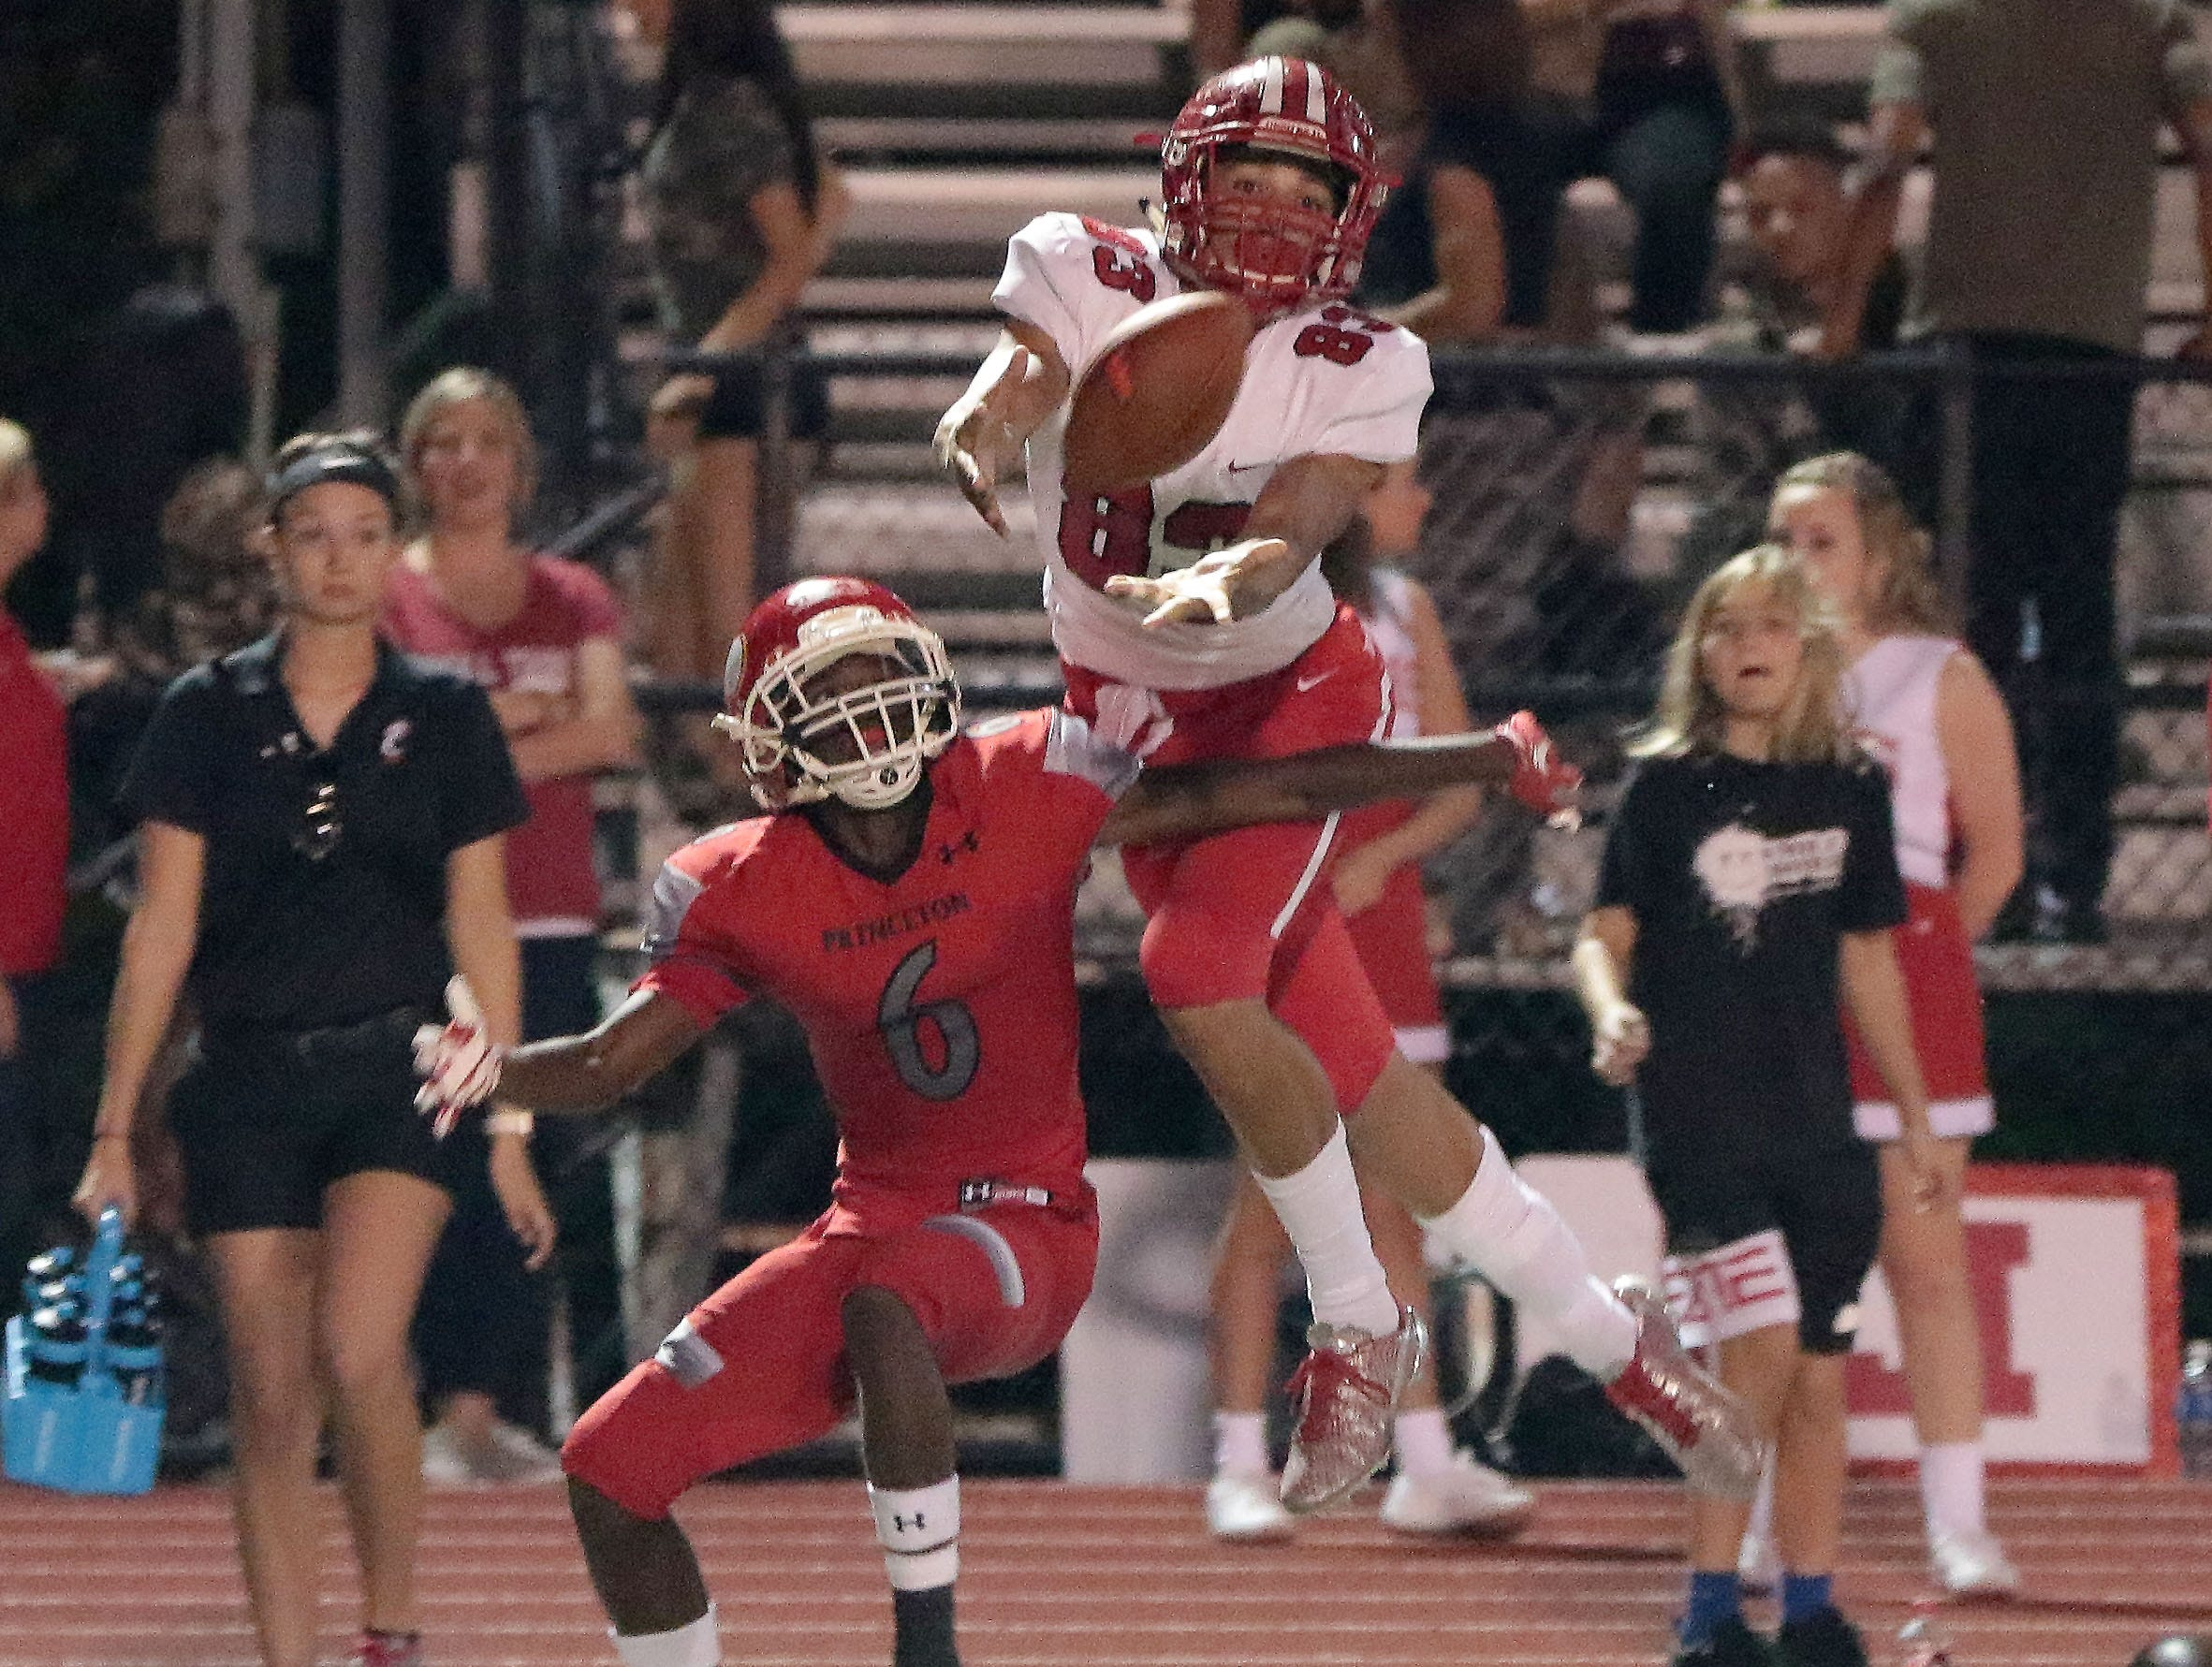 Fairfield's Erick All (83) goes up for the ball over Princeton's Demarcus Hill during their football game, Friday, Sept. 22, 2017.